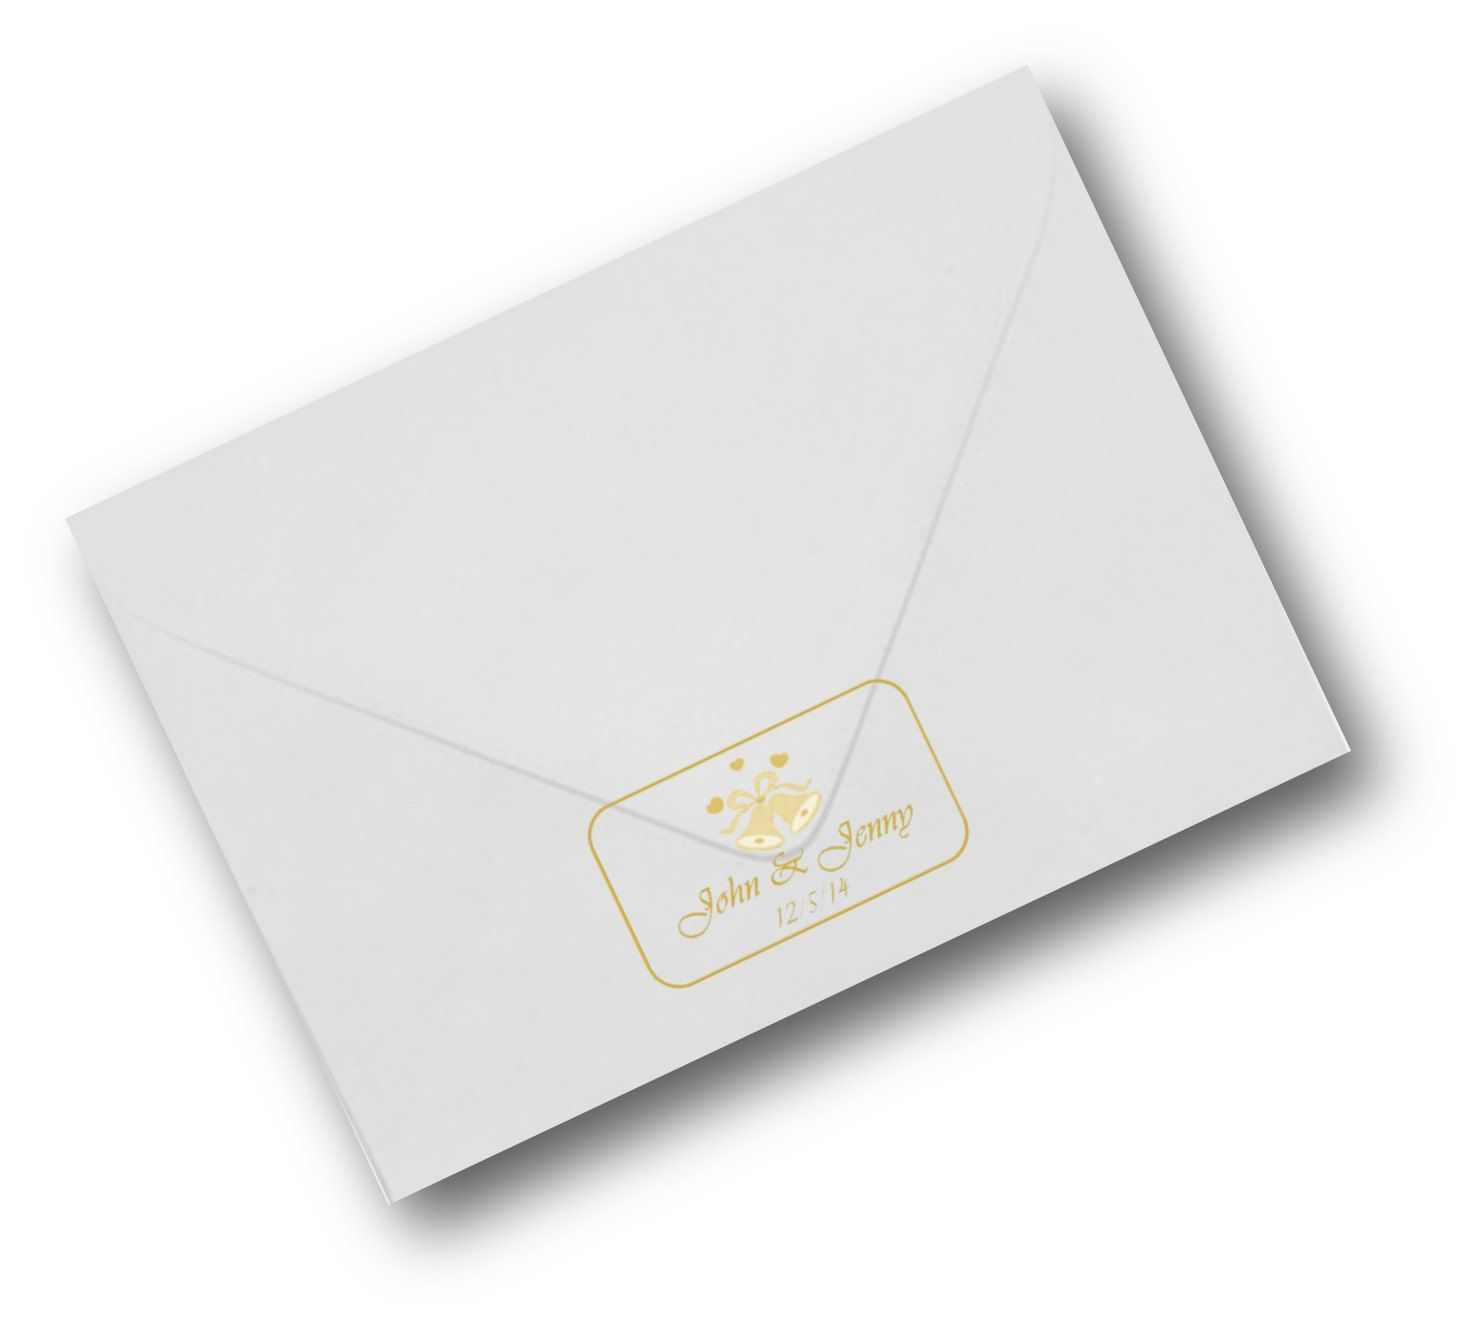 monogram wedding envelope seals sticker%0A Wedding invitation seals gold or silver on clear labels    per sheet  personalised custom designed and printed envelope seals invitations